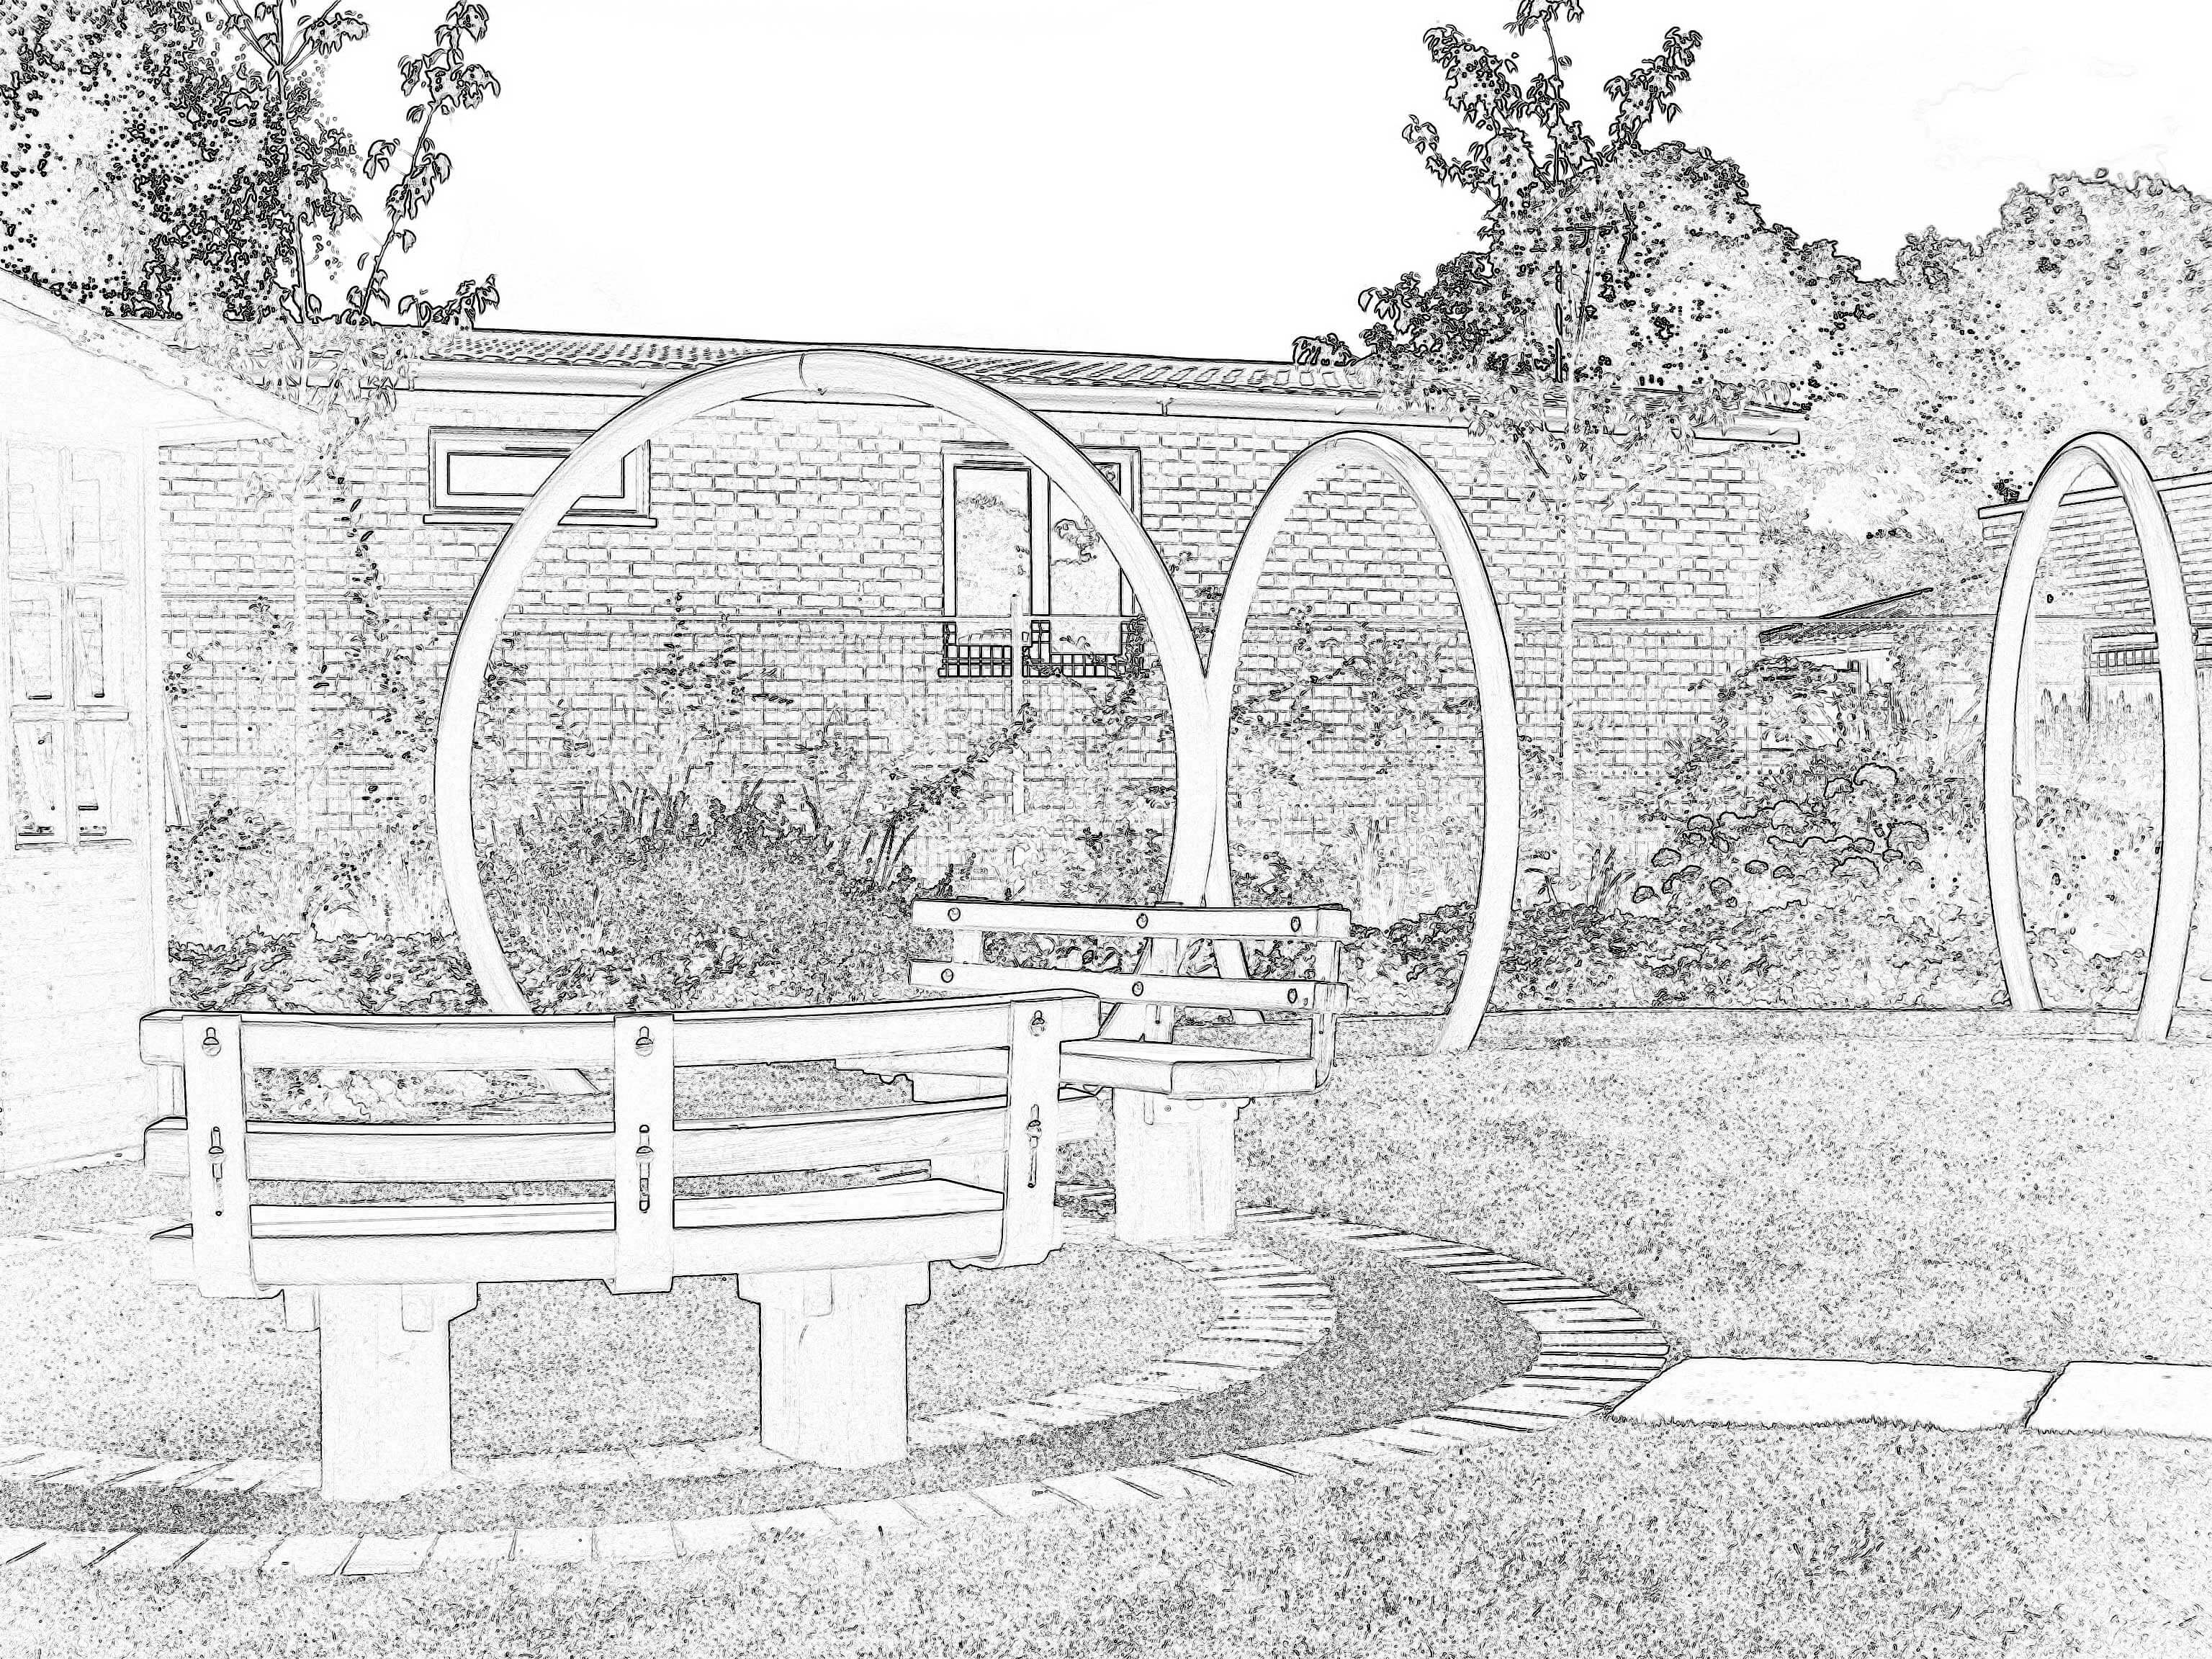 Petrow Harley Landscaping Garden Picture - Pencil Layer